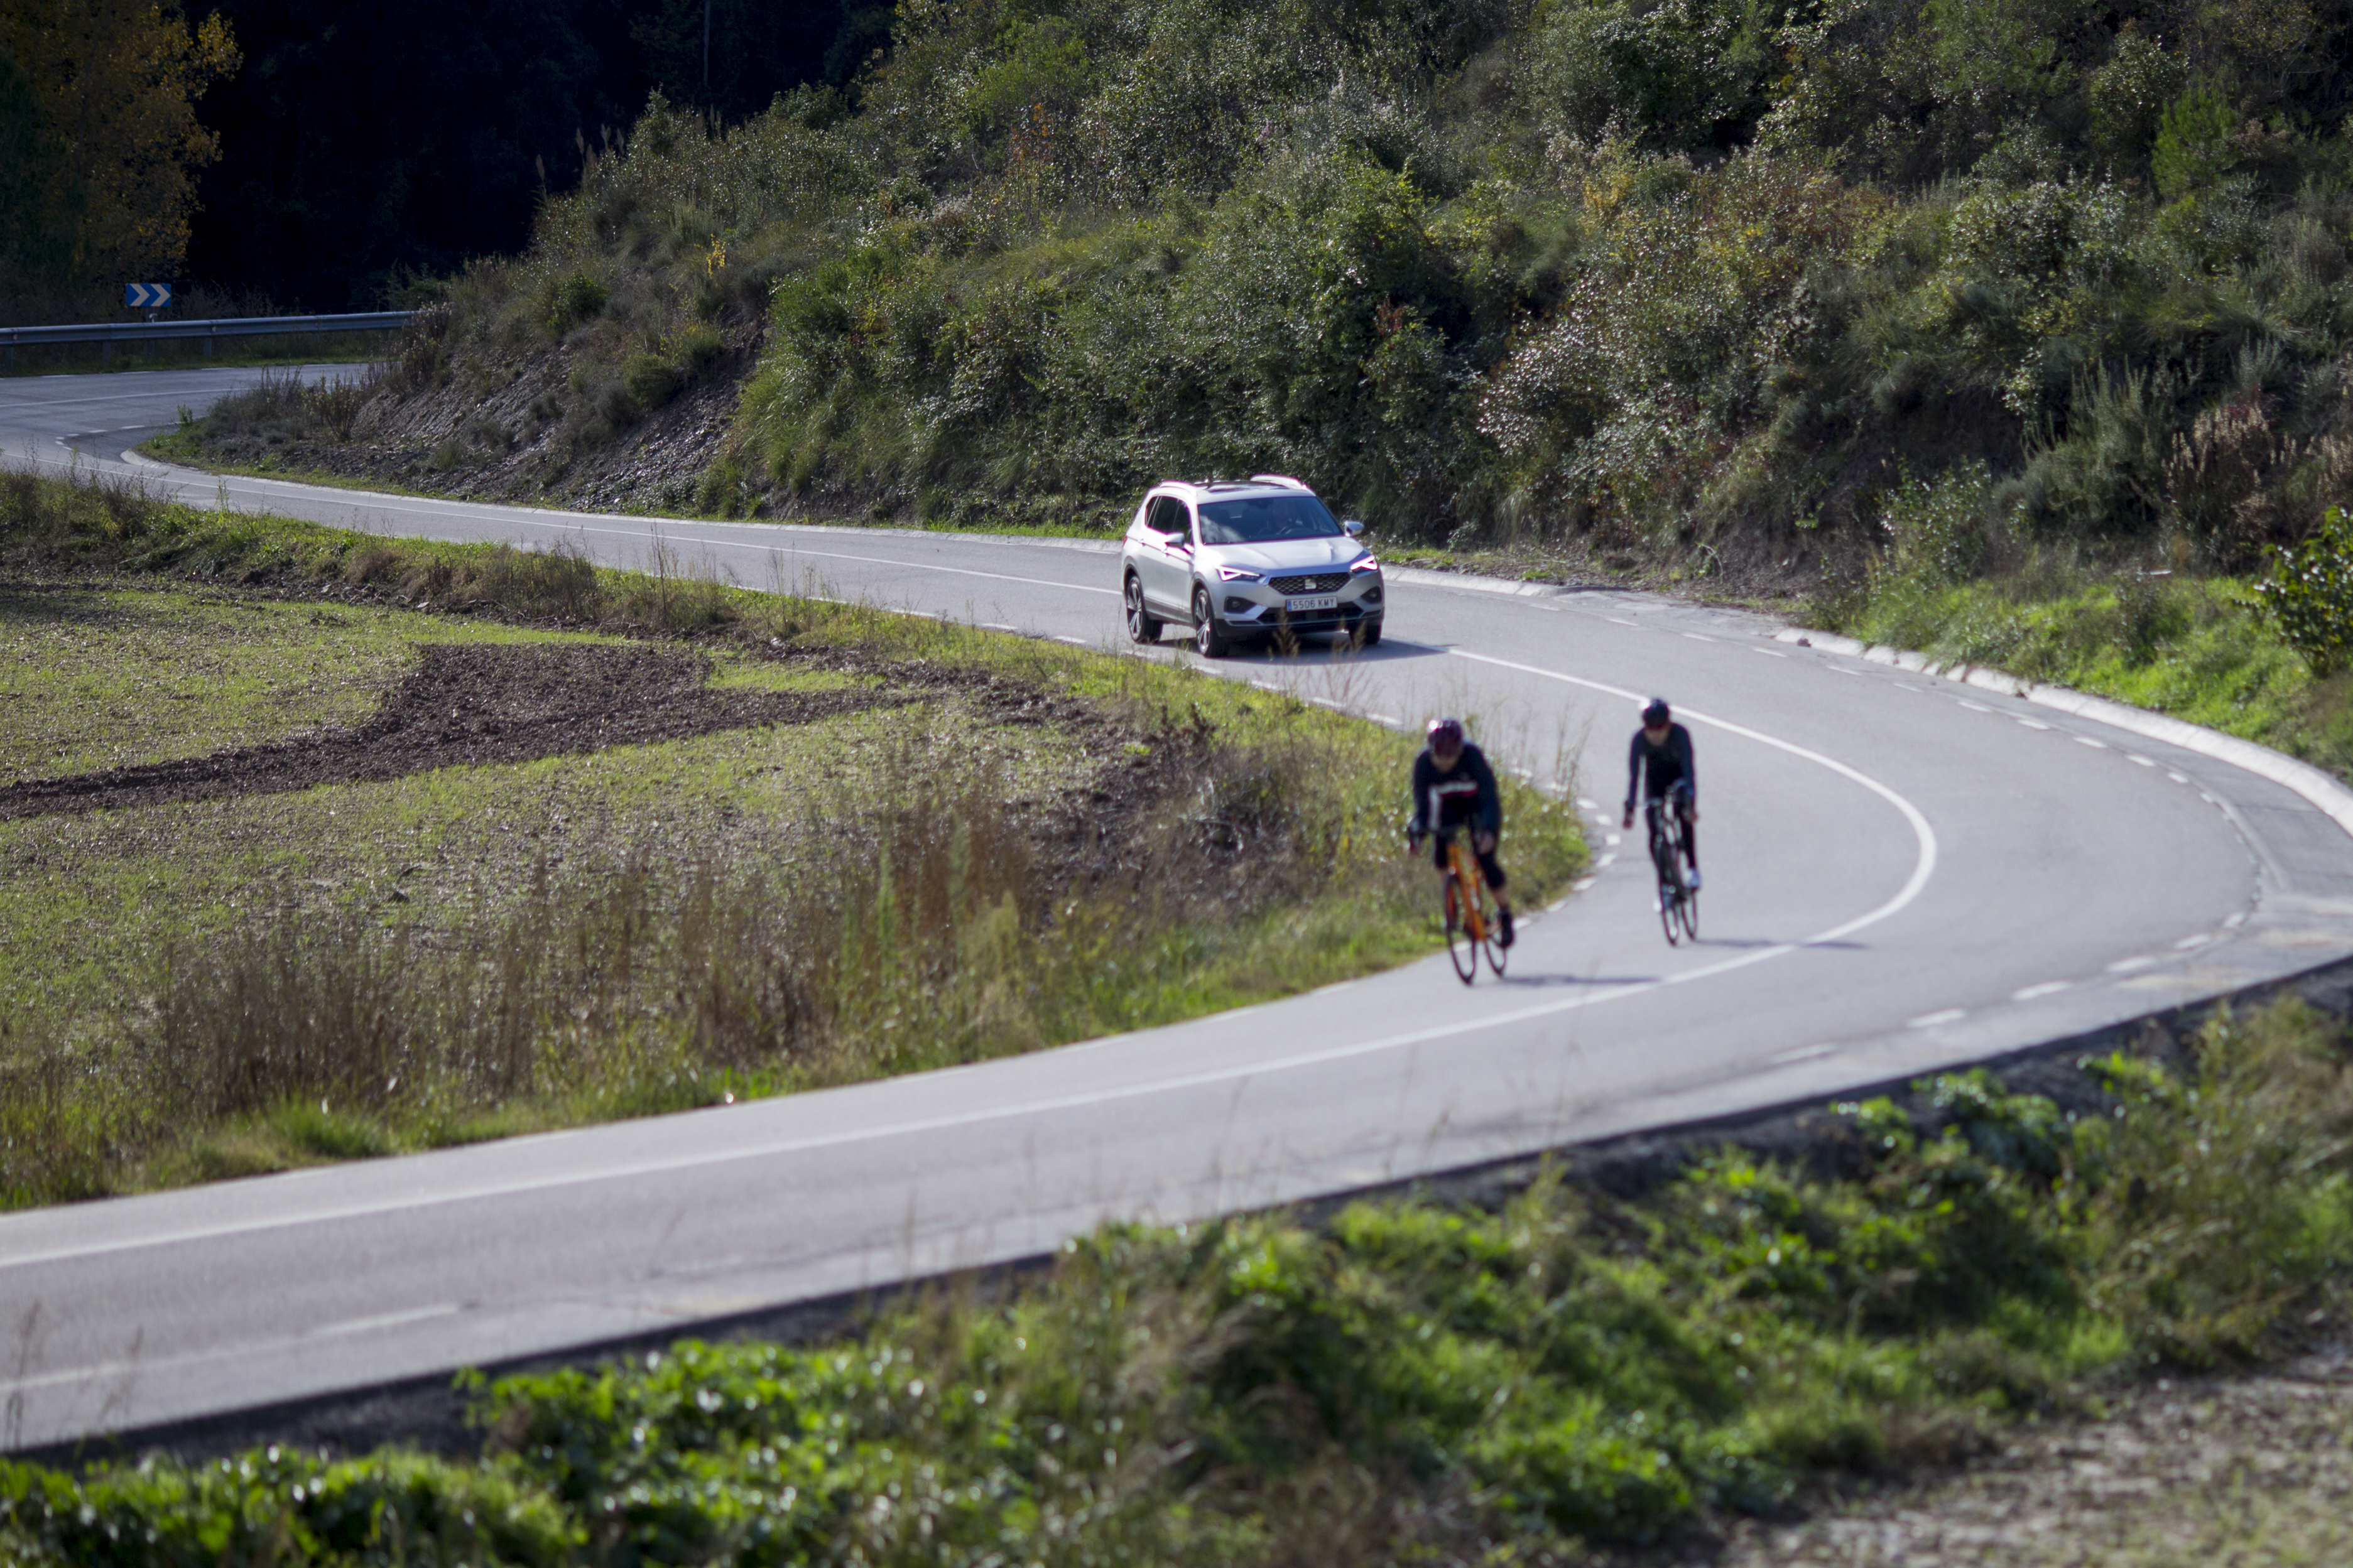 At 72 km/h, the vehicle begins to brake 20 metres prior to a possible collision with a cyclist